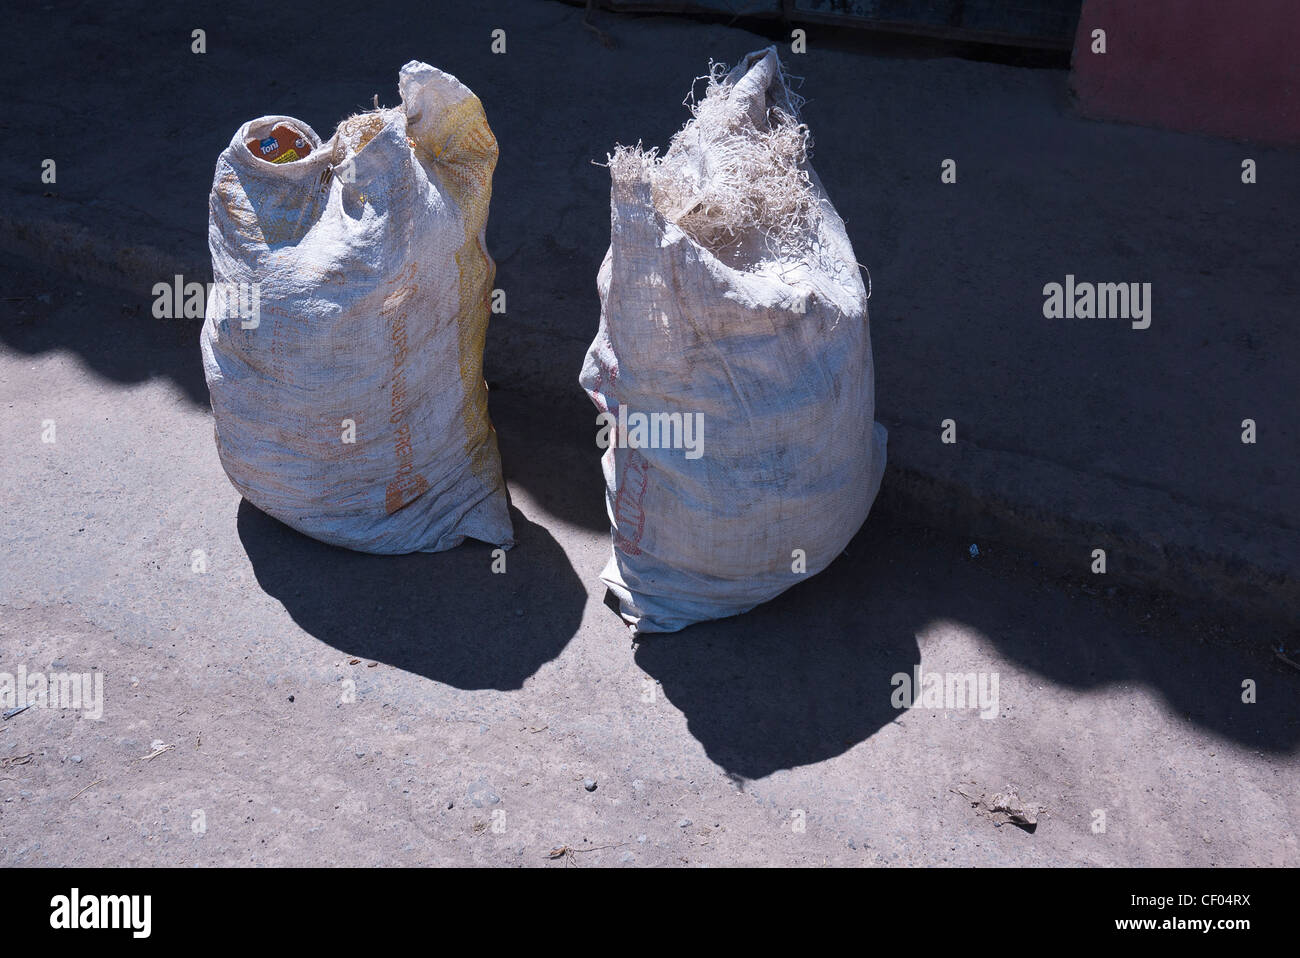 Two stuffed sacks of grain sit on the asphalt half in sun half in shadow in a village in Ecuador. - Stock Image